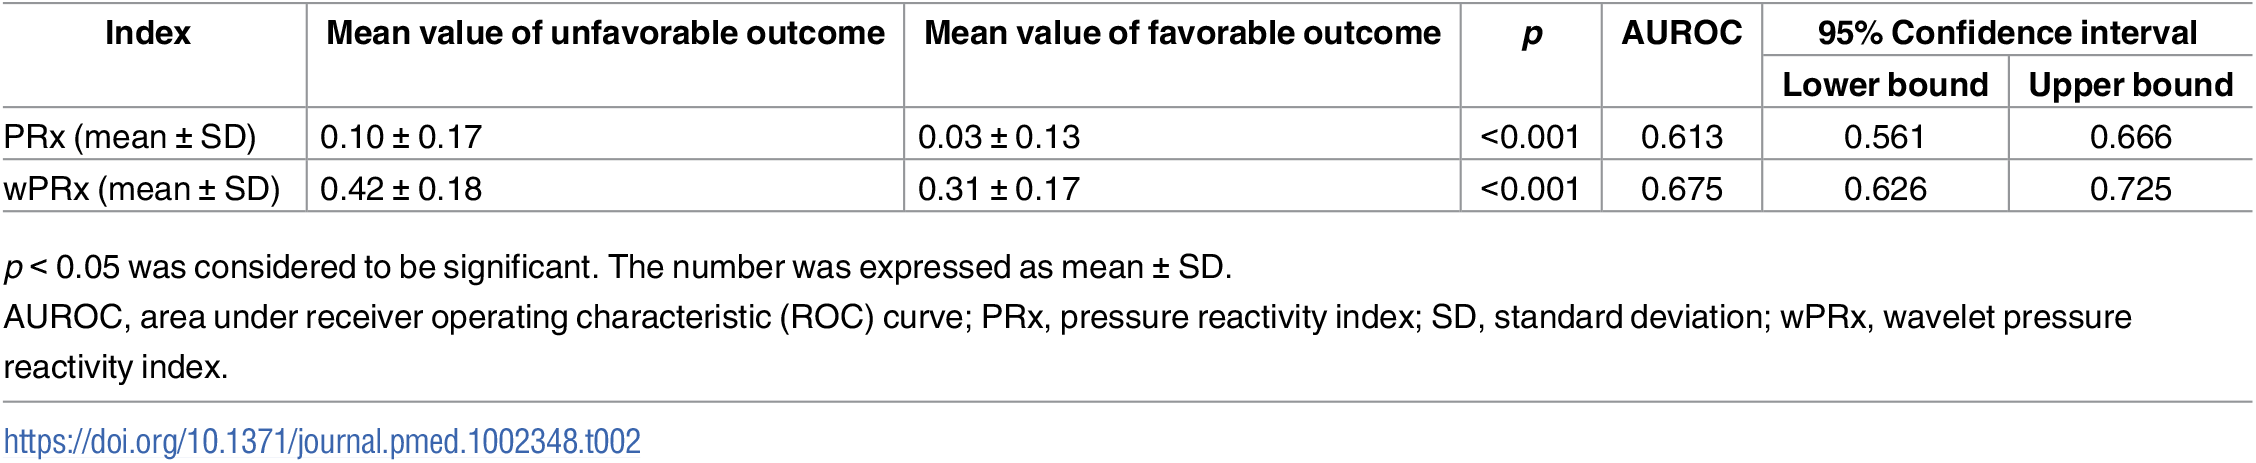 The ability of PRx/wPRx in distinguishing favorable and unfavorable patient outcomes.